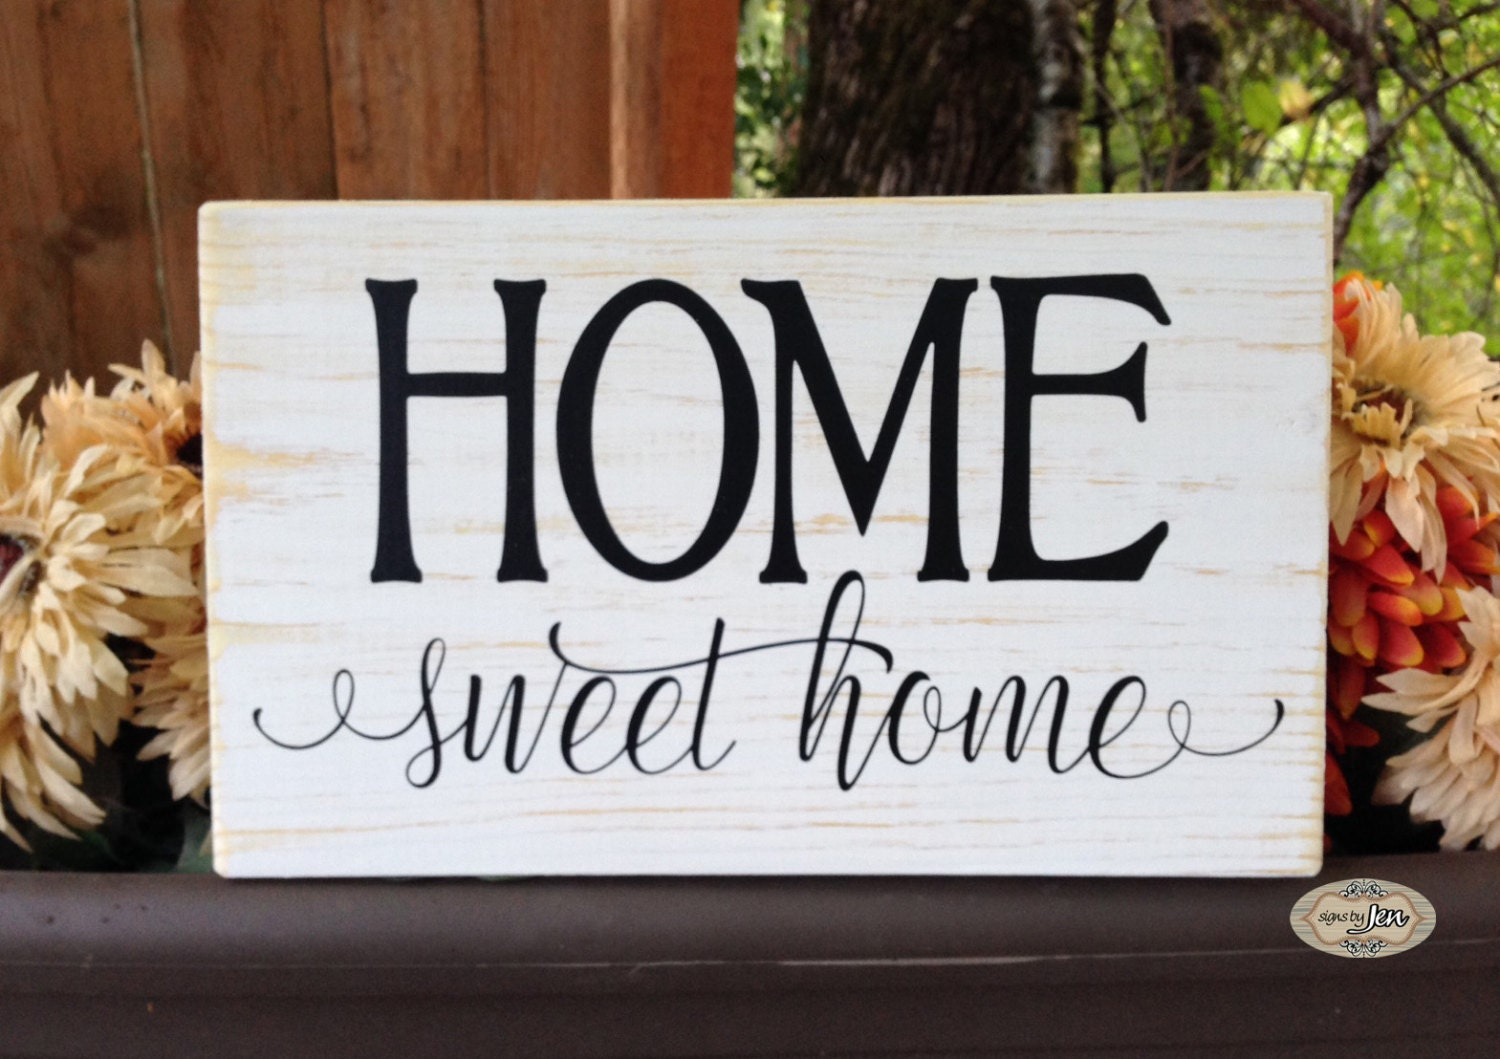 Home sweet home sign home wood sign Style HM89 by SignsbyJen